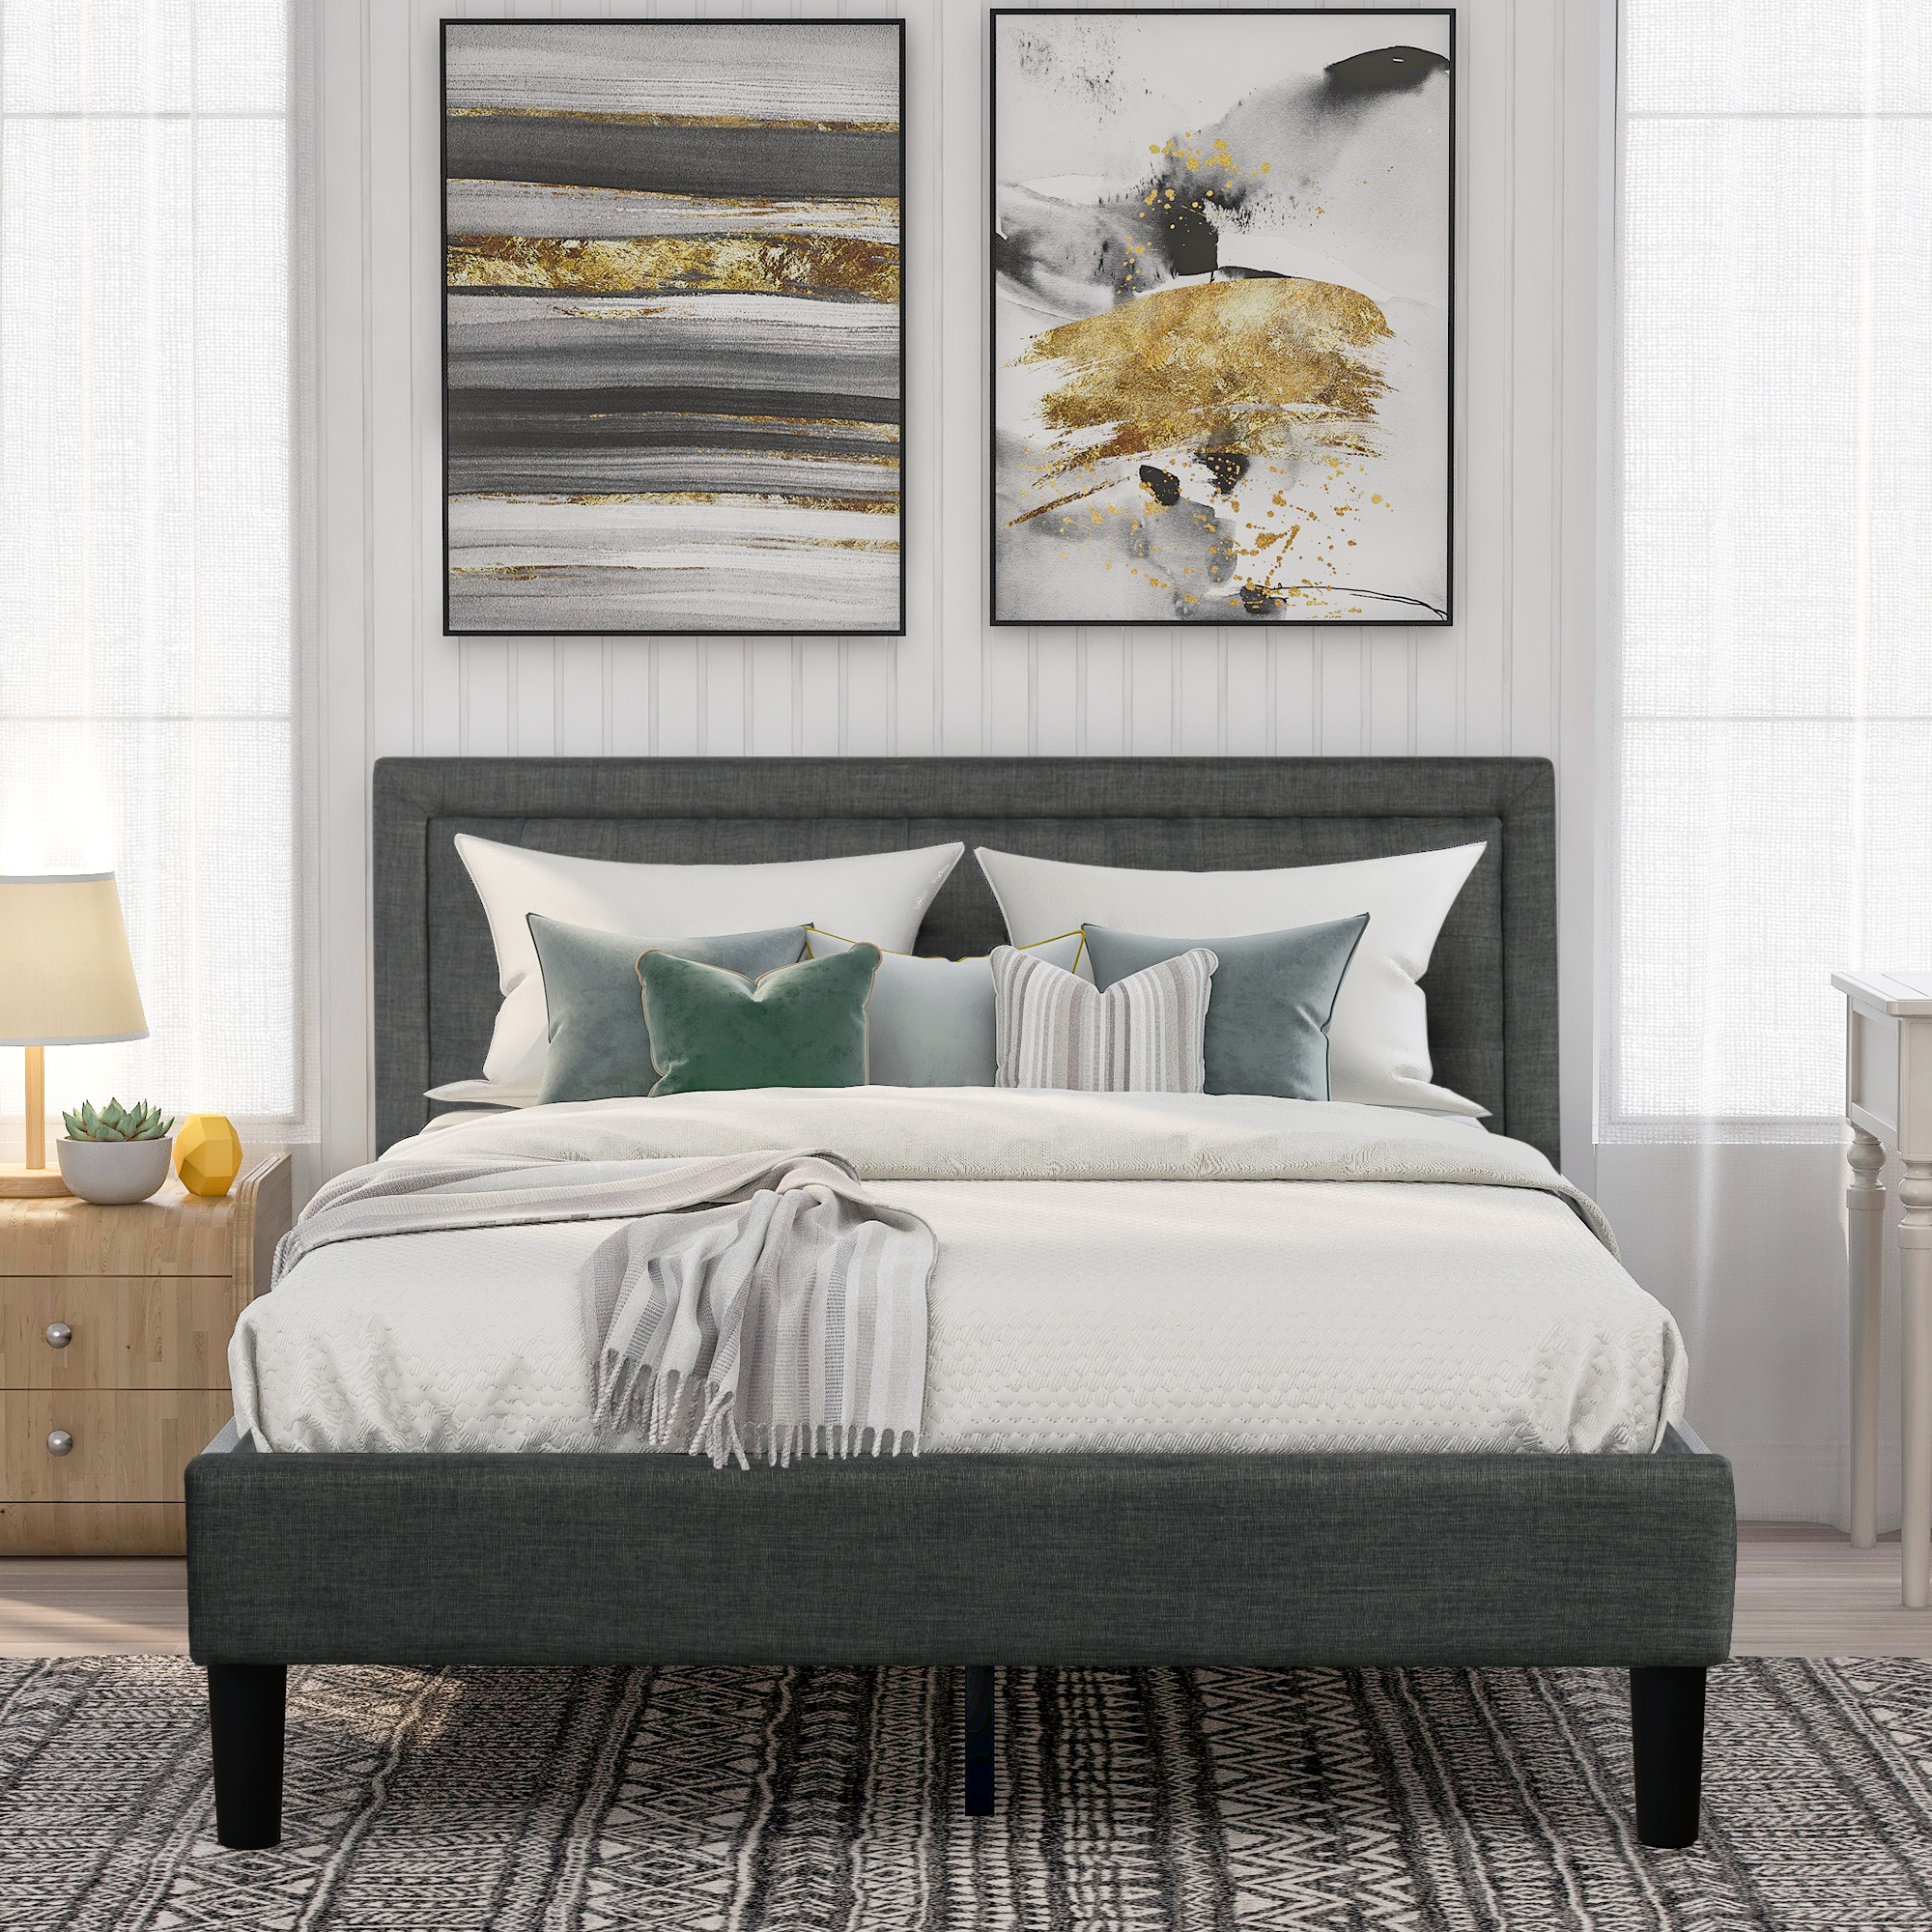 clearance queen bed frames for kids boys girls heavy on walmart bedroom furniture clearance id=76132